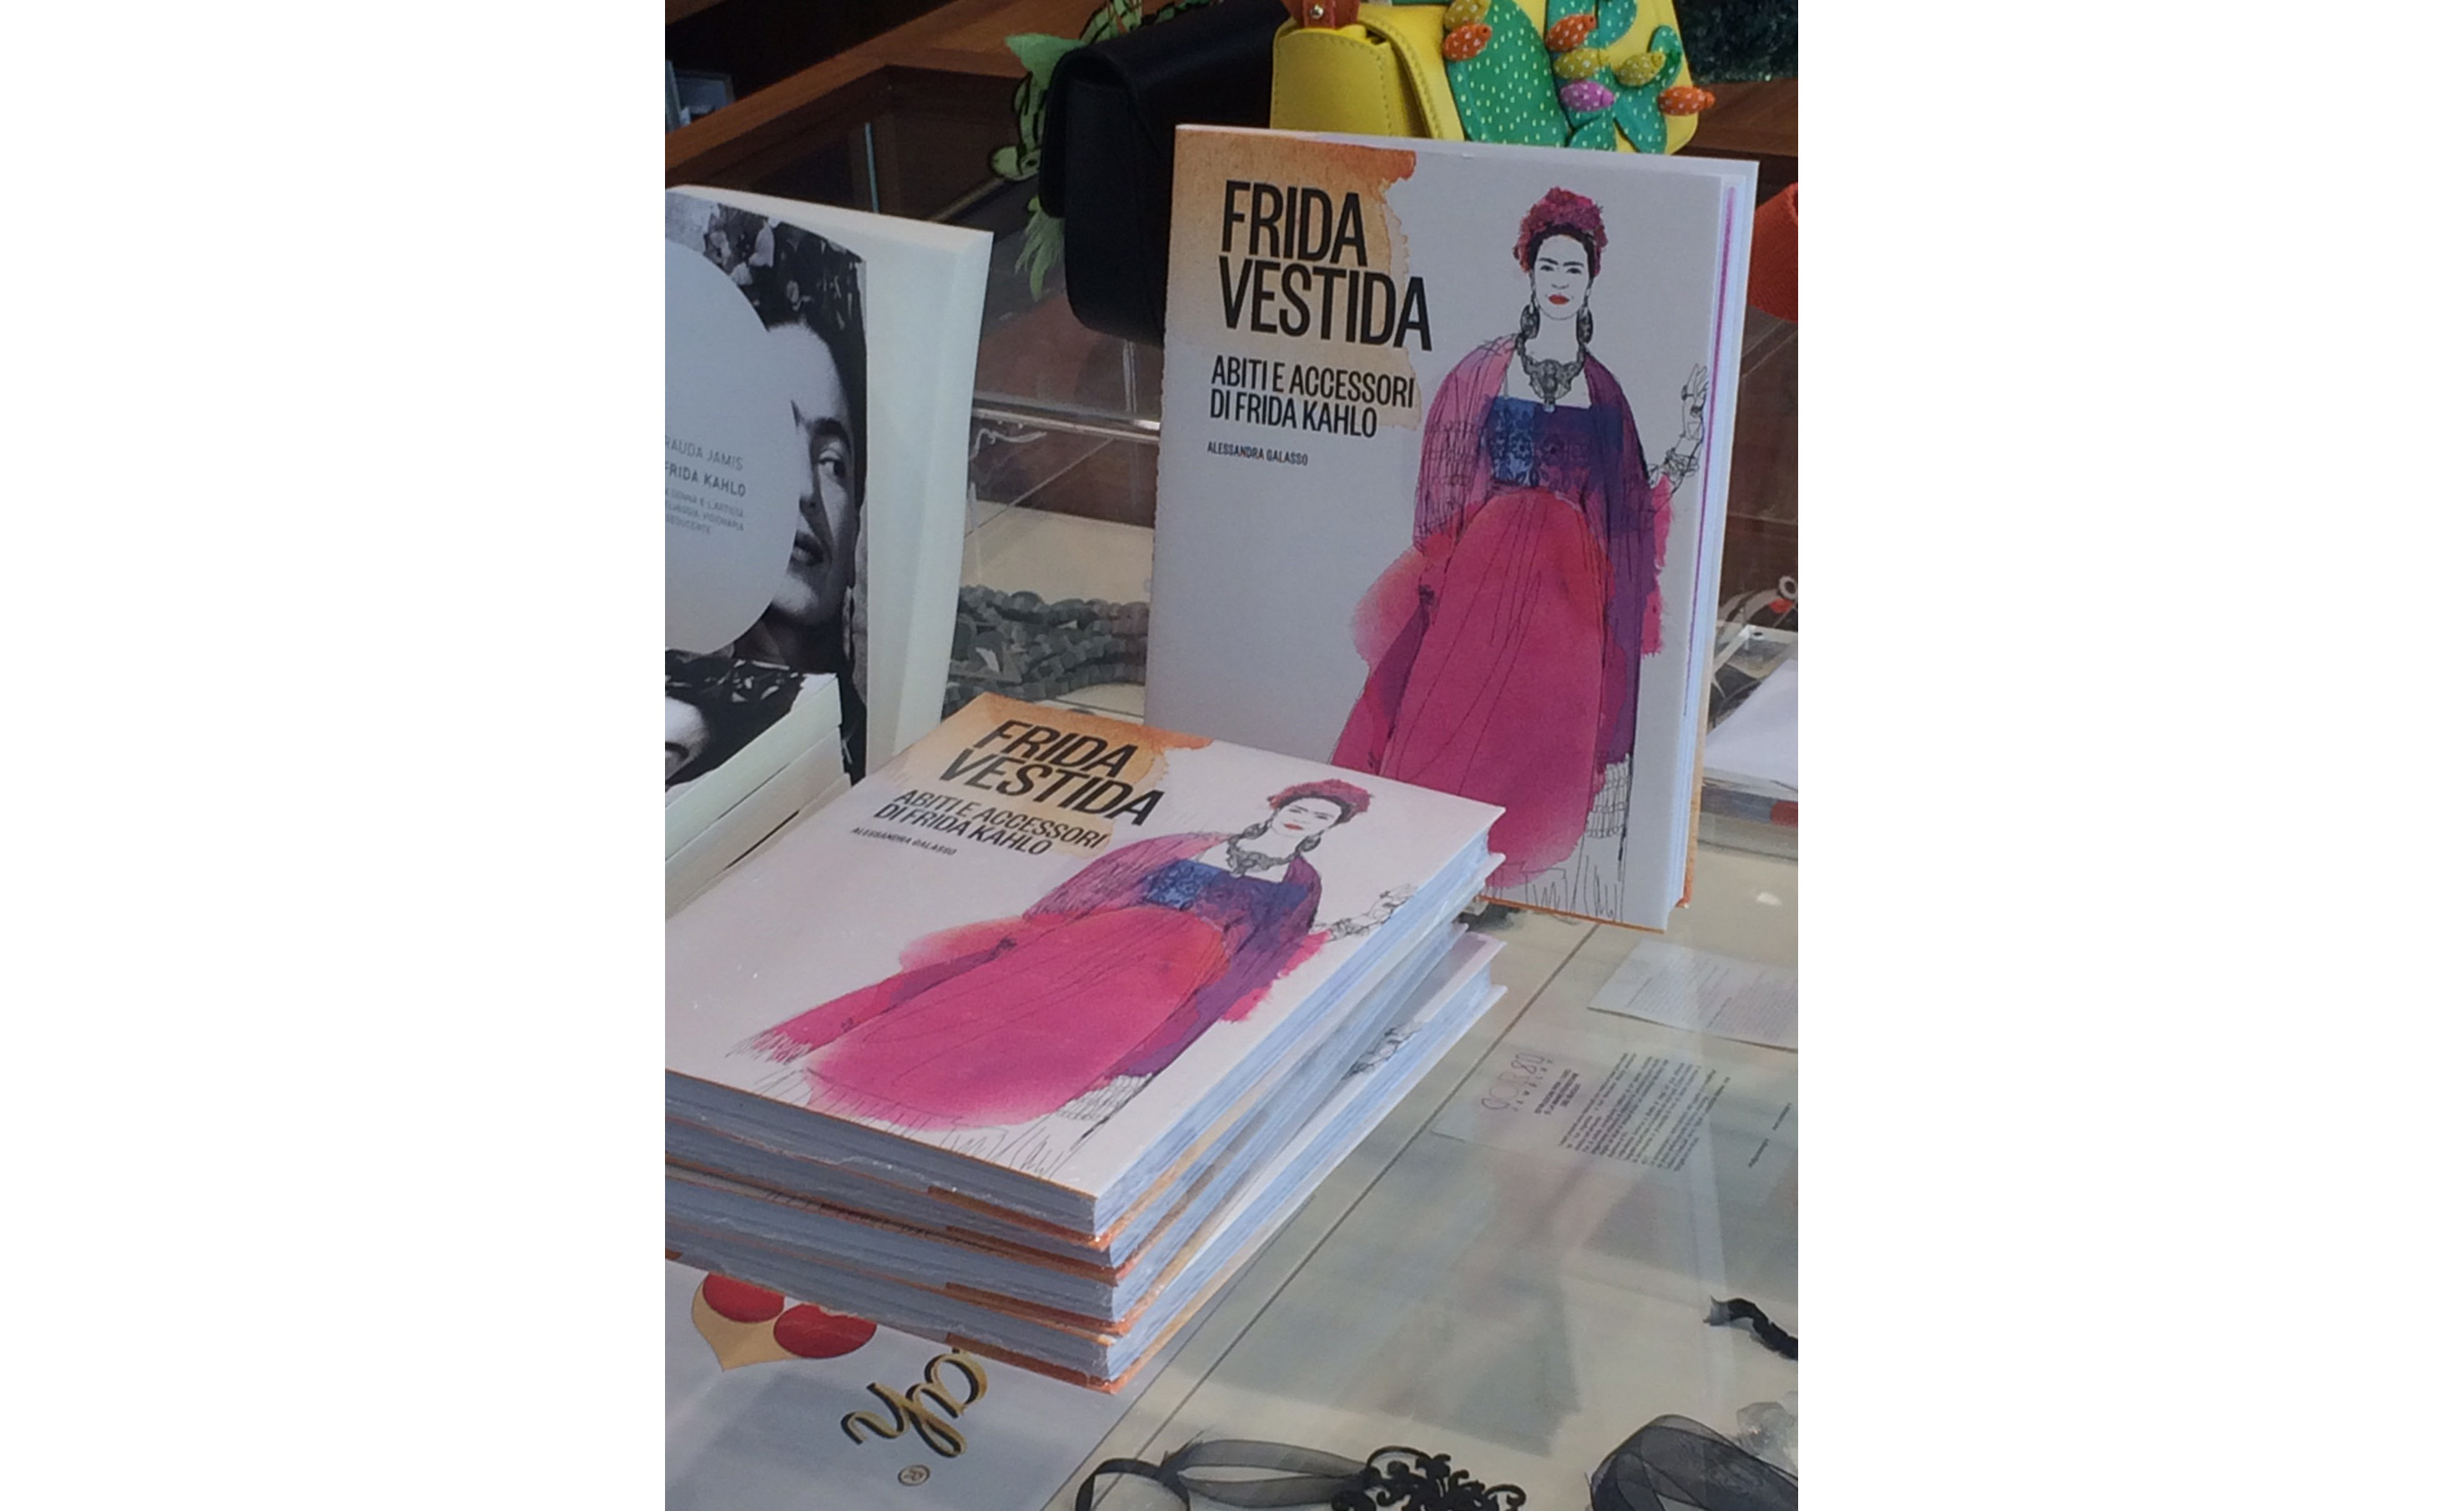 libro illustrato acquerello, Frida Kahlo, Frida Vestida,  fashion watercolor illustration book